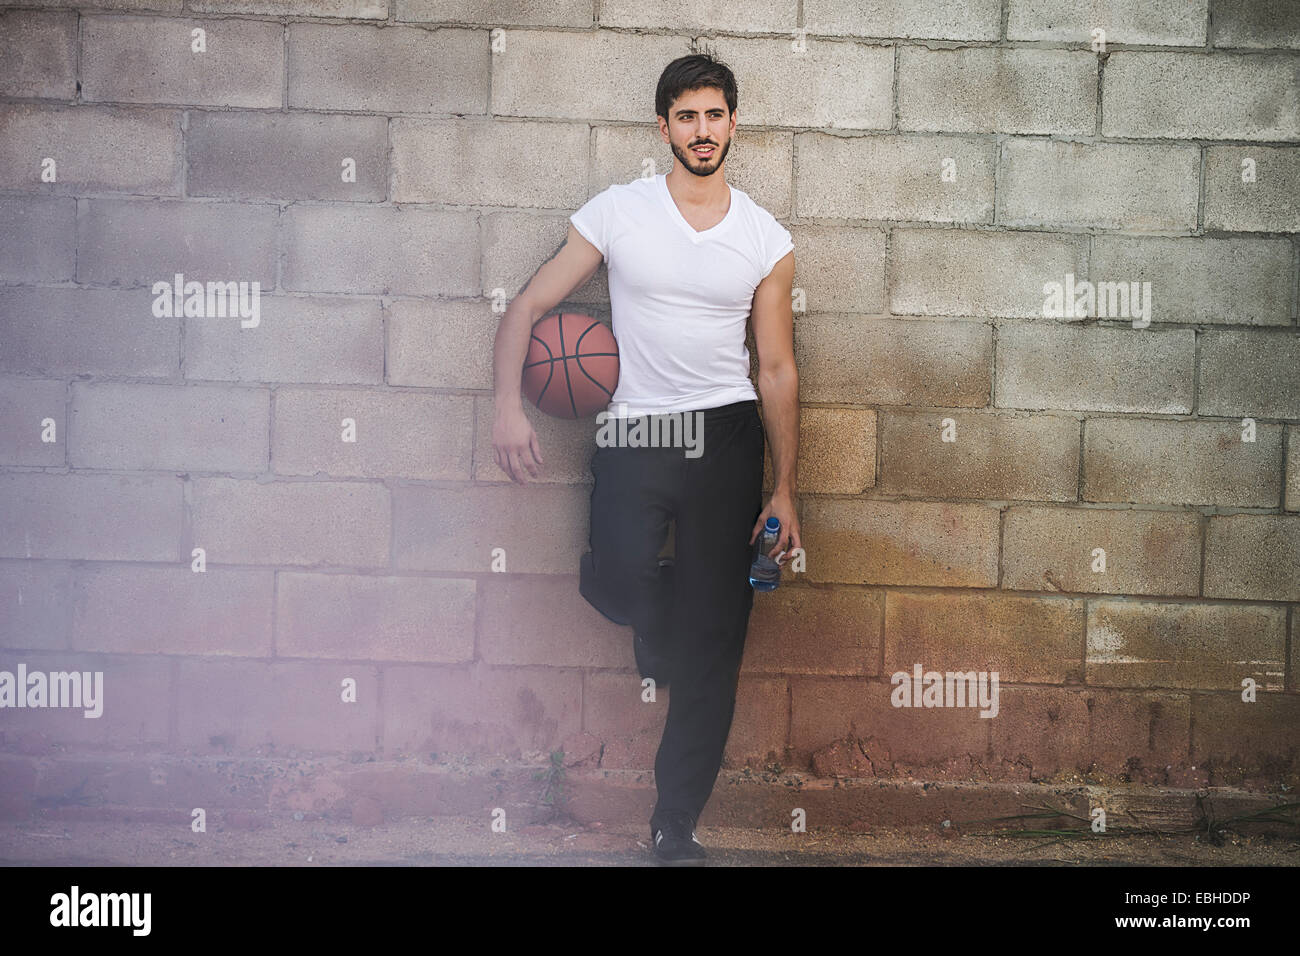 Young male basketball player leaning against wall - Stock Image